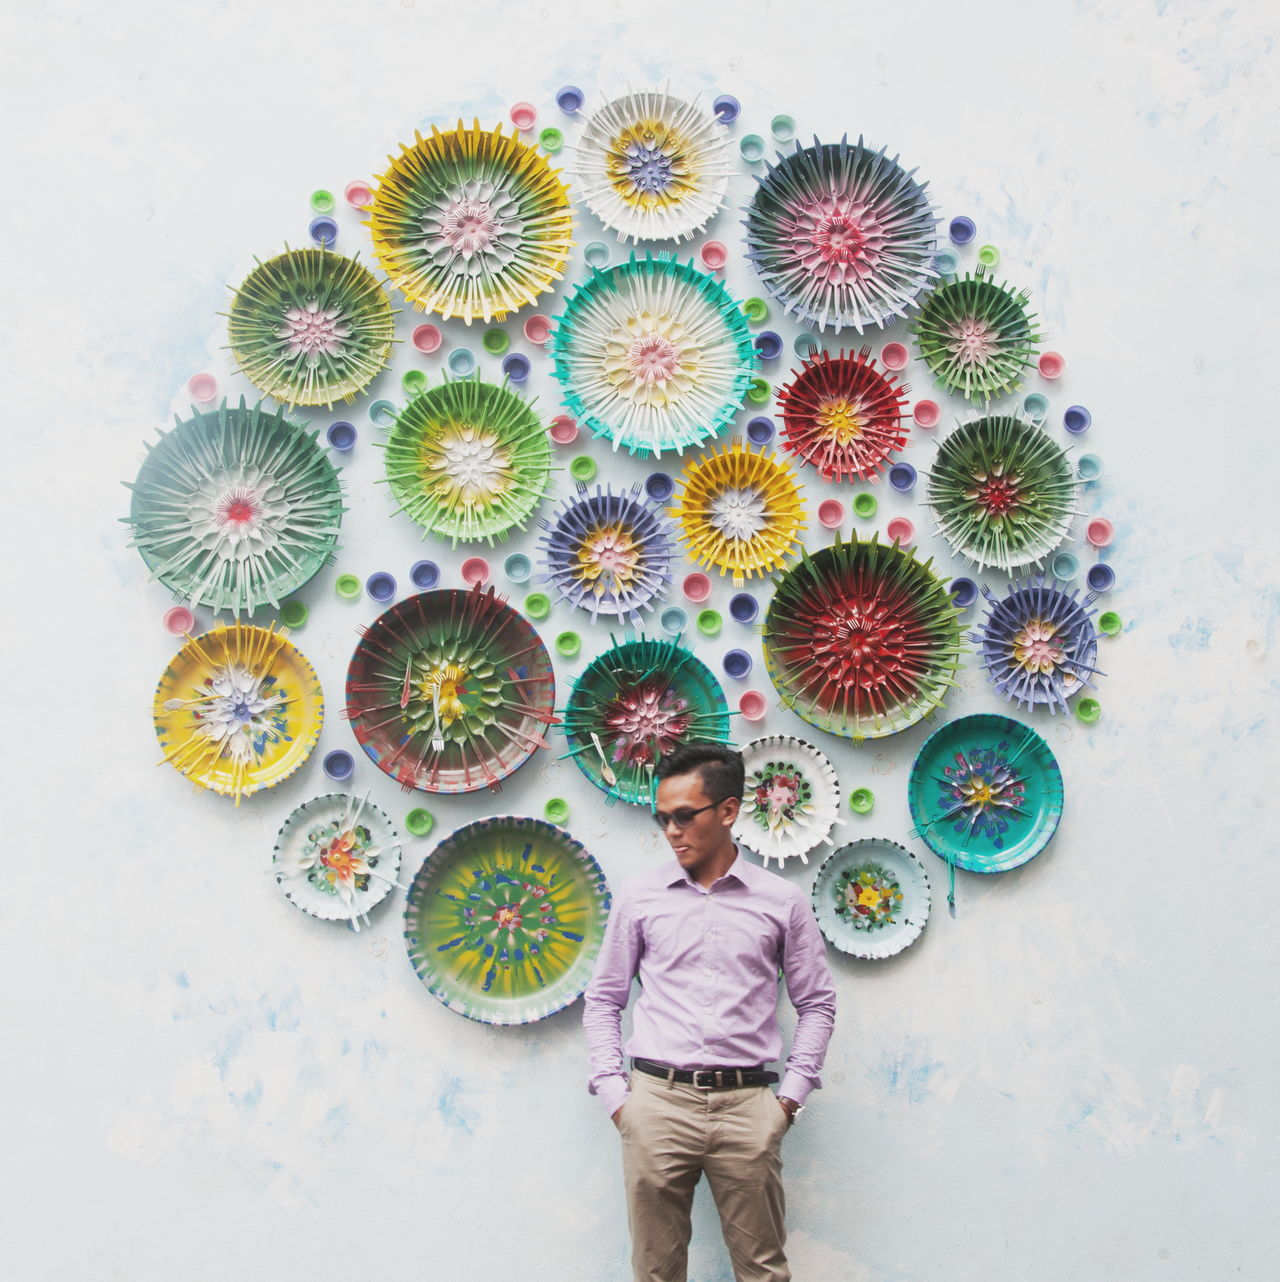 Beautiful stock photos of feuerwerk, real people, one person, multi colored, casual clothing